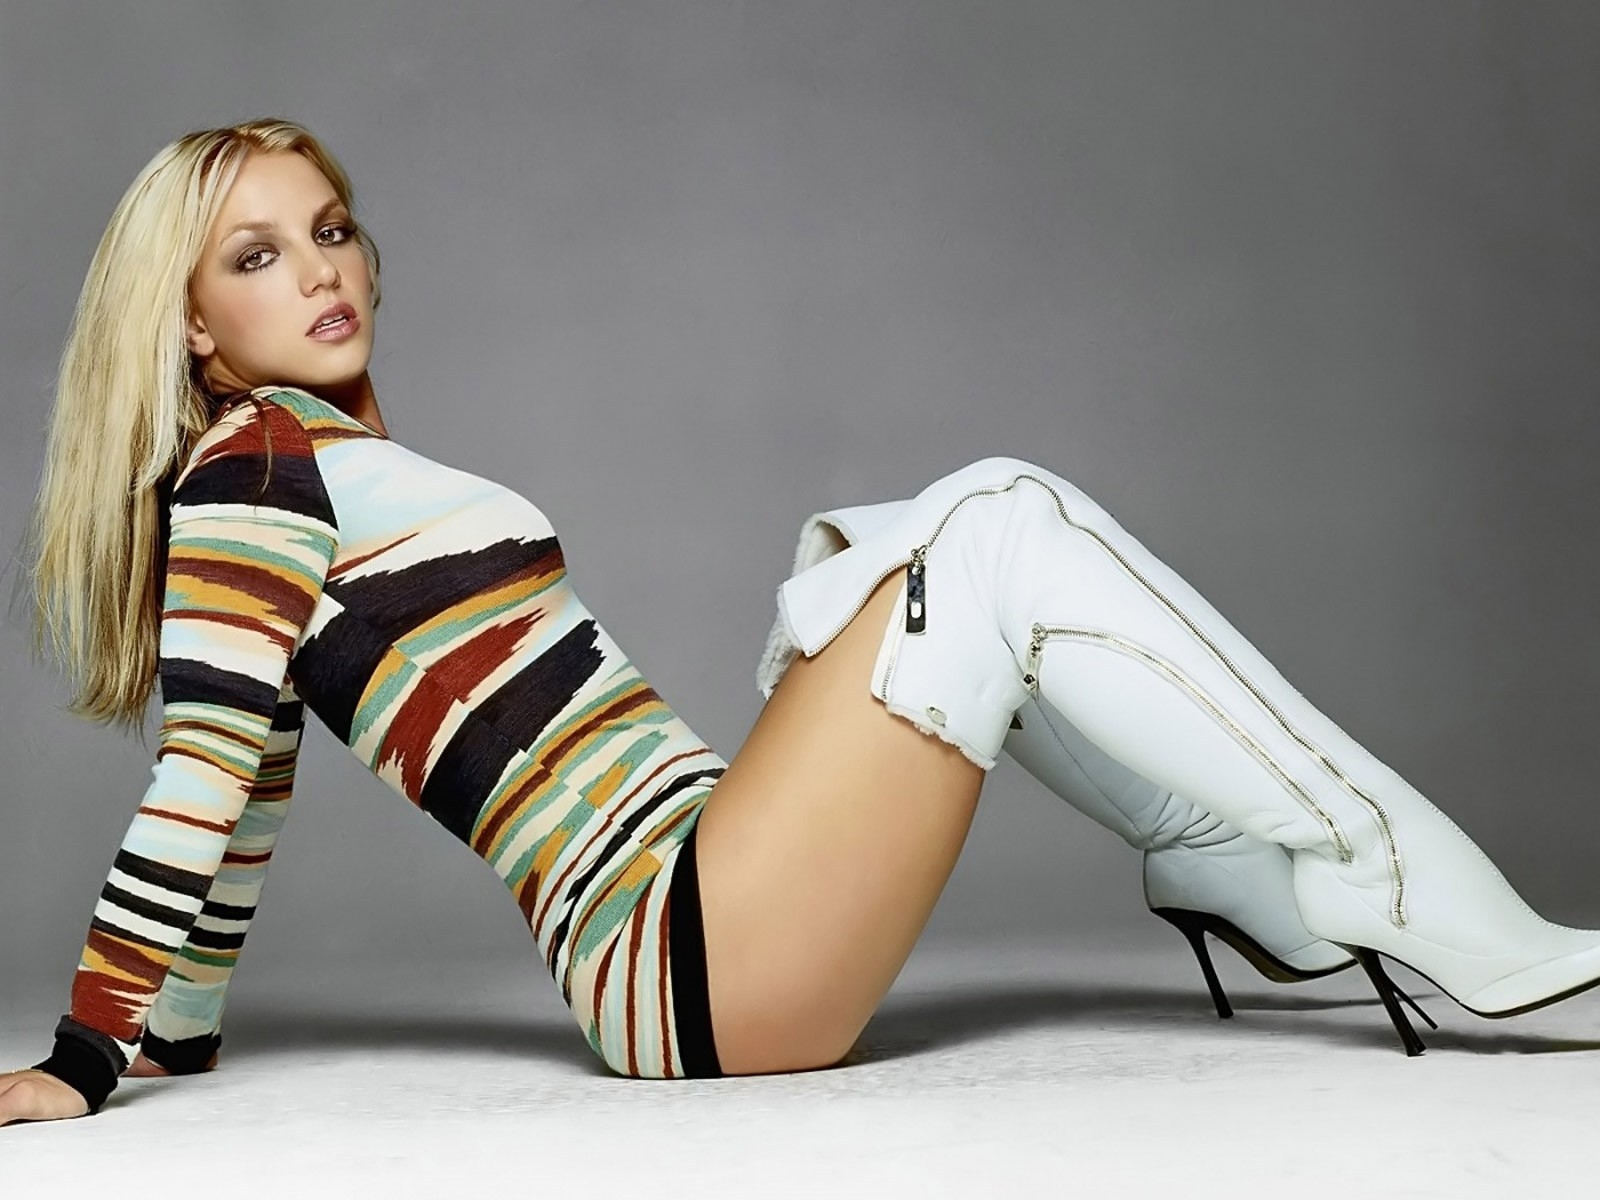 1600x1200 Britney Spears hot wallpaper 1600x1200 Resolution Wallpaper, HD  Celebrities 4K Wallpapers, Images, Photos and Background - Wallpapers Den